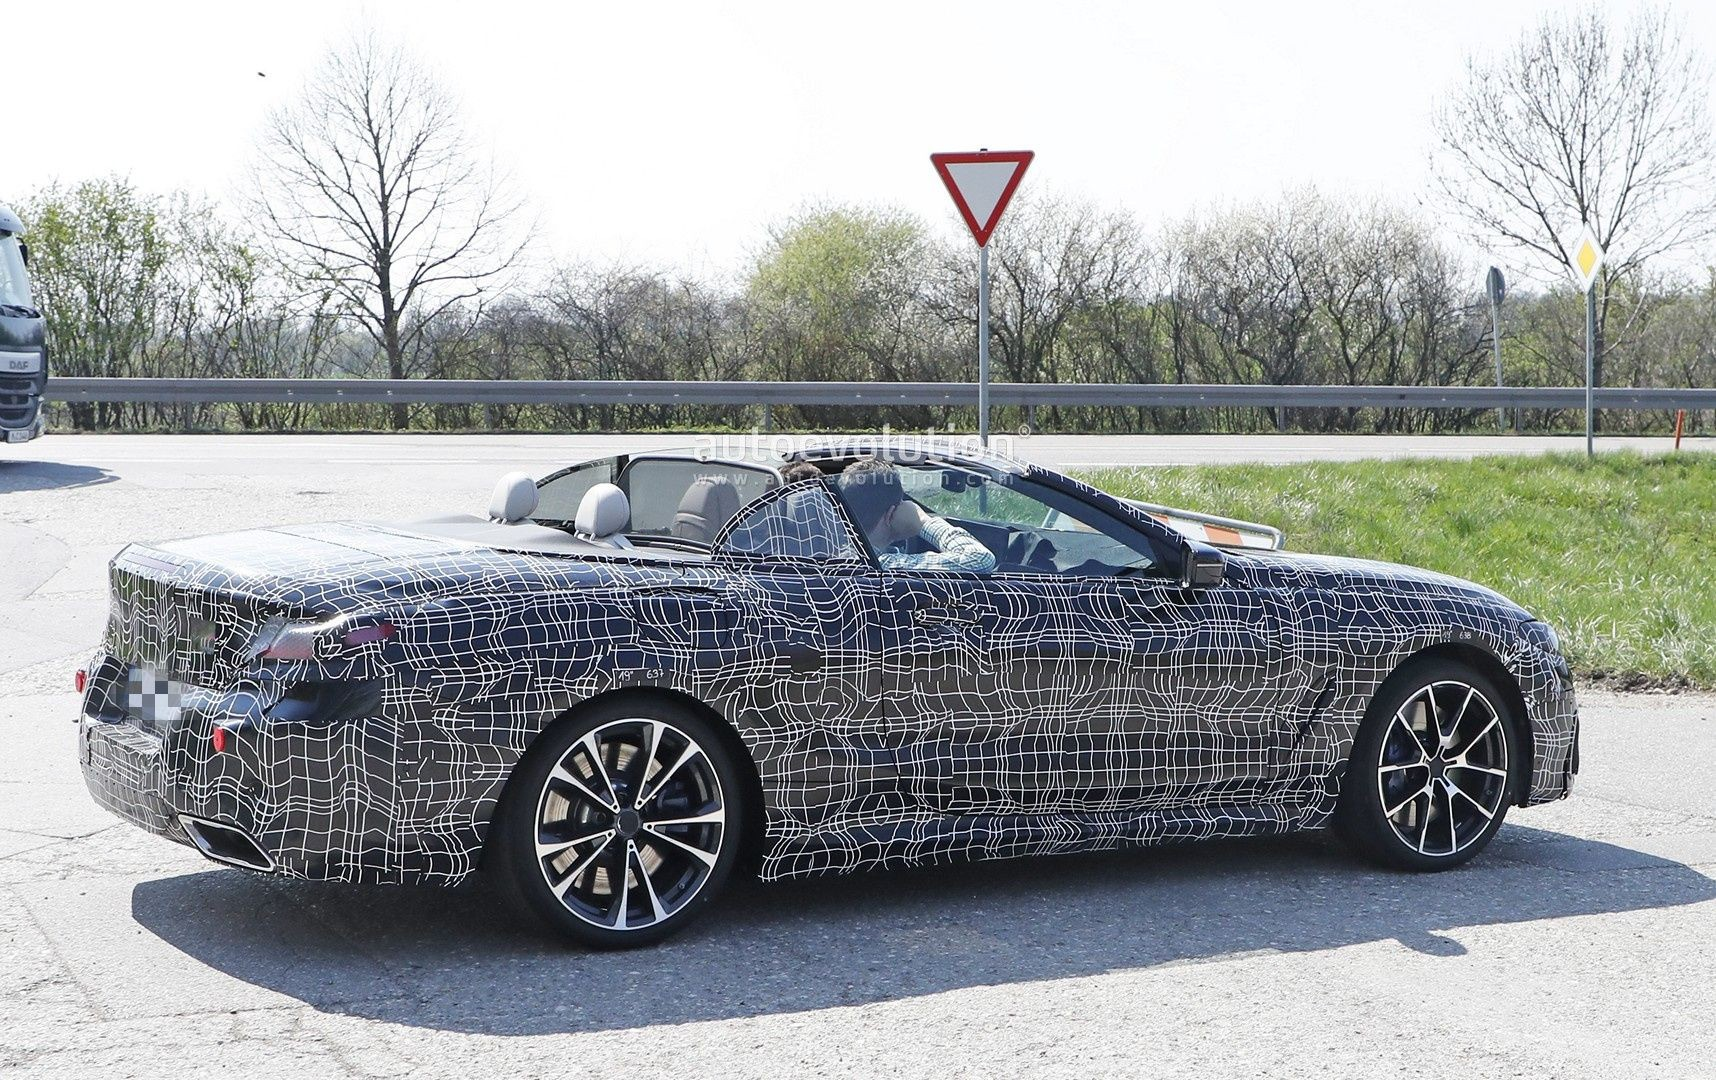 Taking On The Appearance Of A Larger More Modern And Luxurious 6 Series New Cabriolet Fills Niche That Already Exists In BMW Lineup